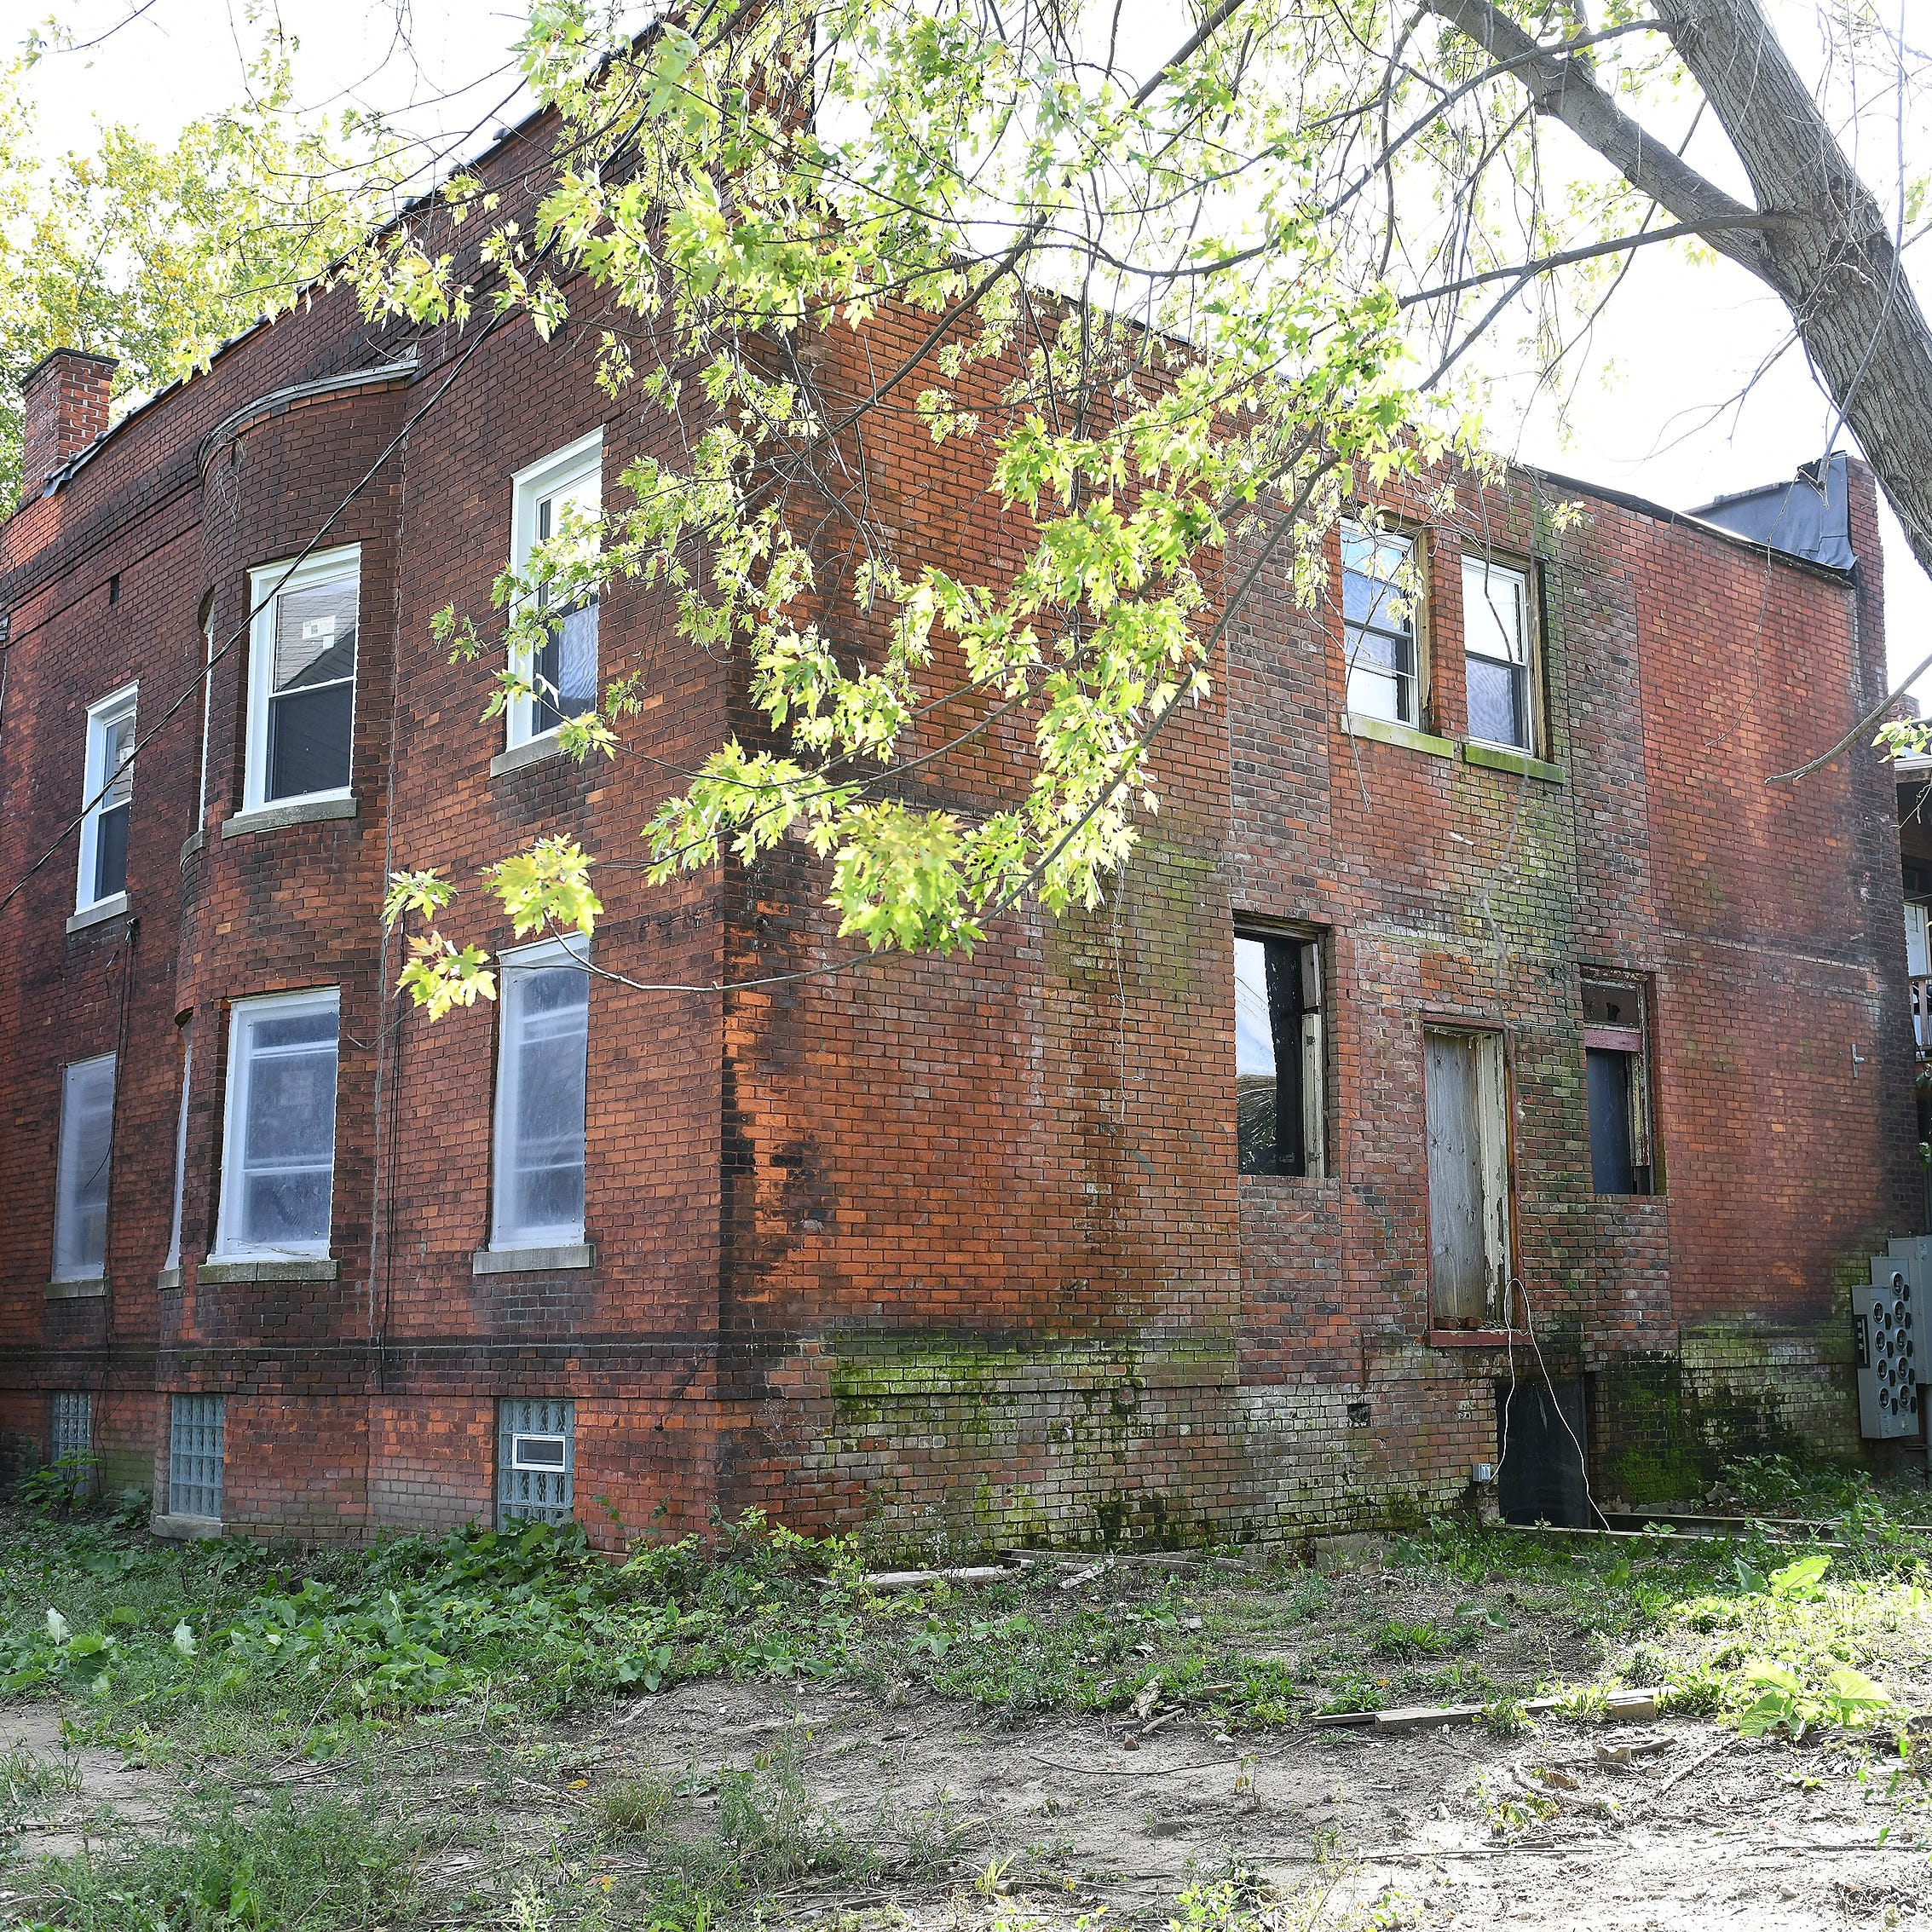 Land bank lets Gilchrist keep blighted Detroit building after weekend cleanup